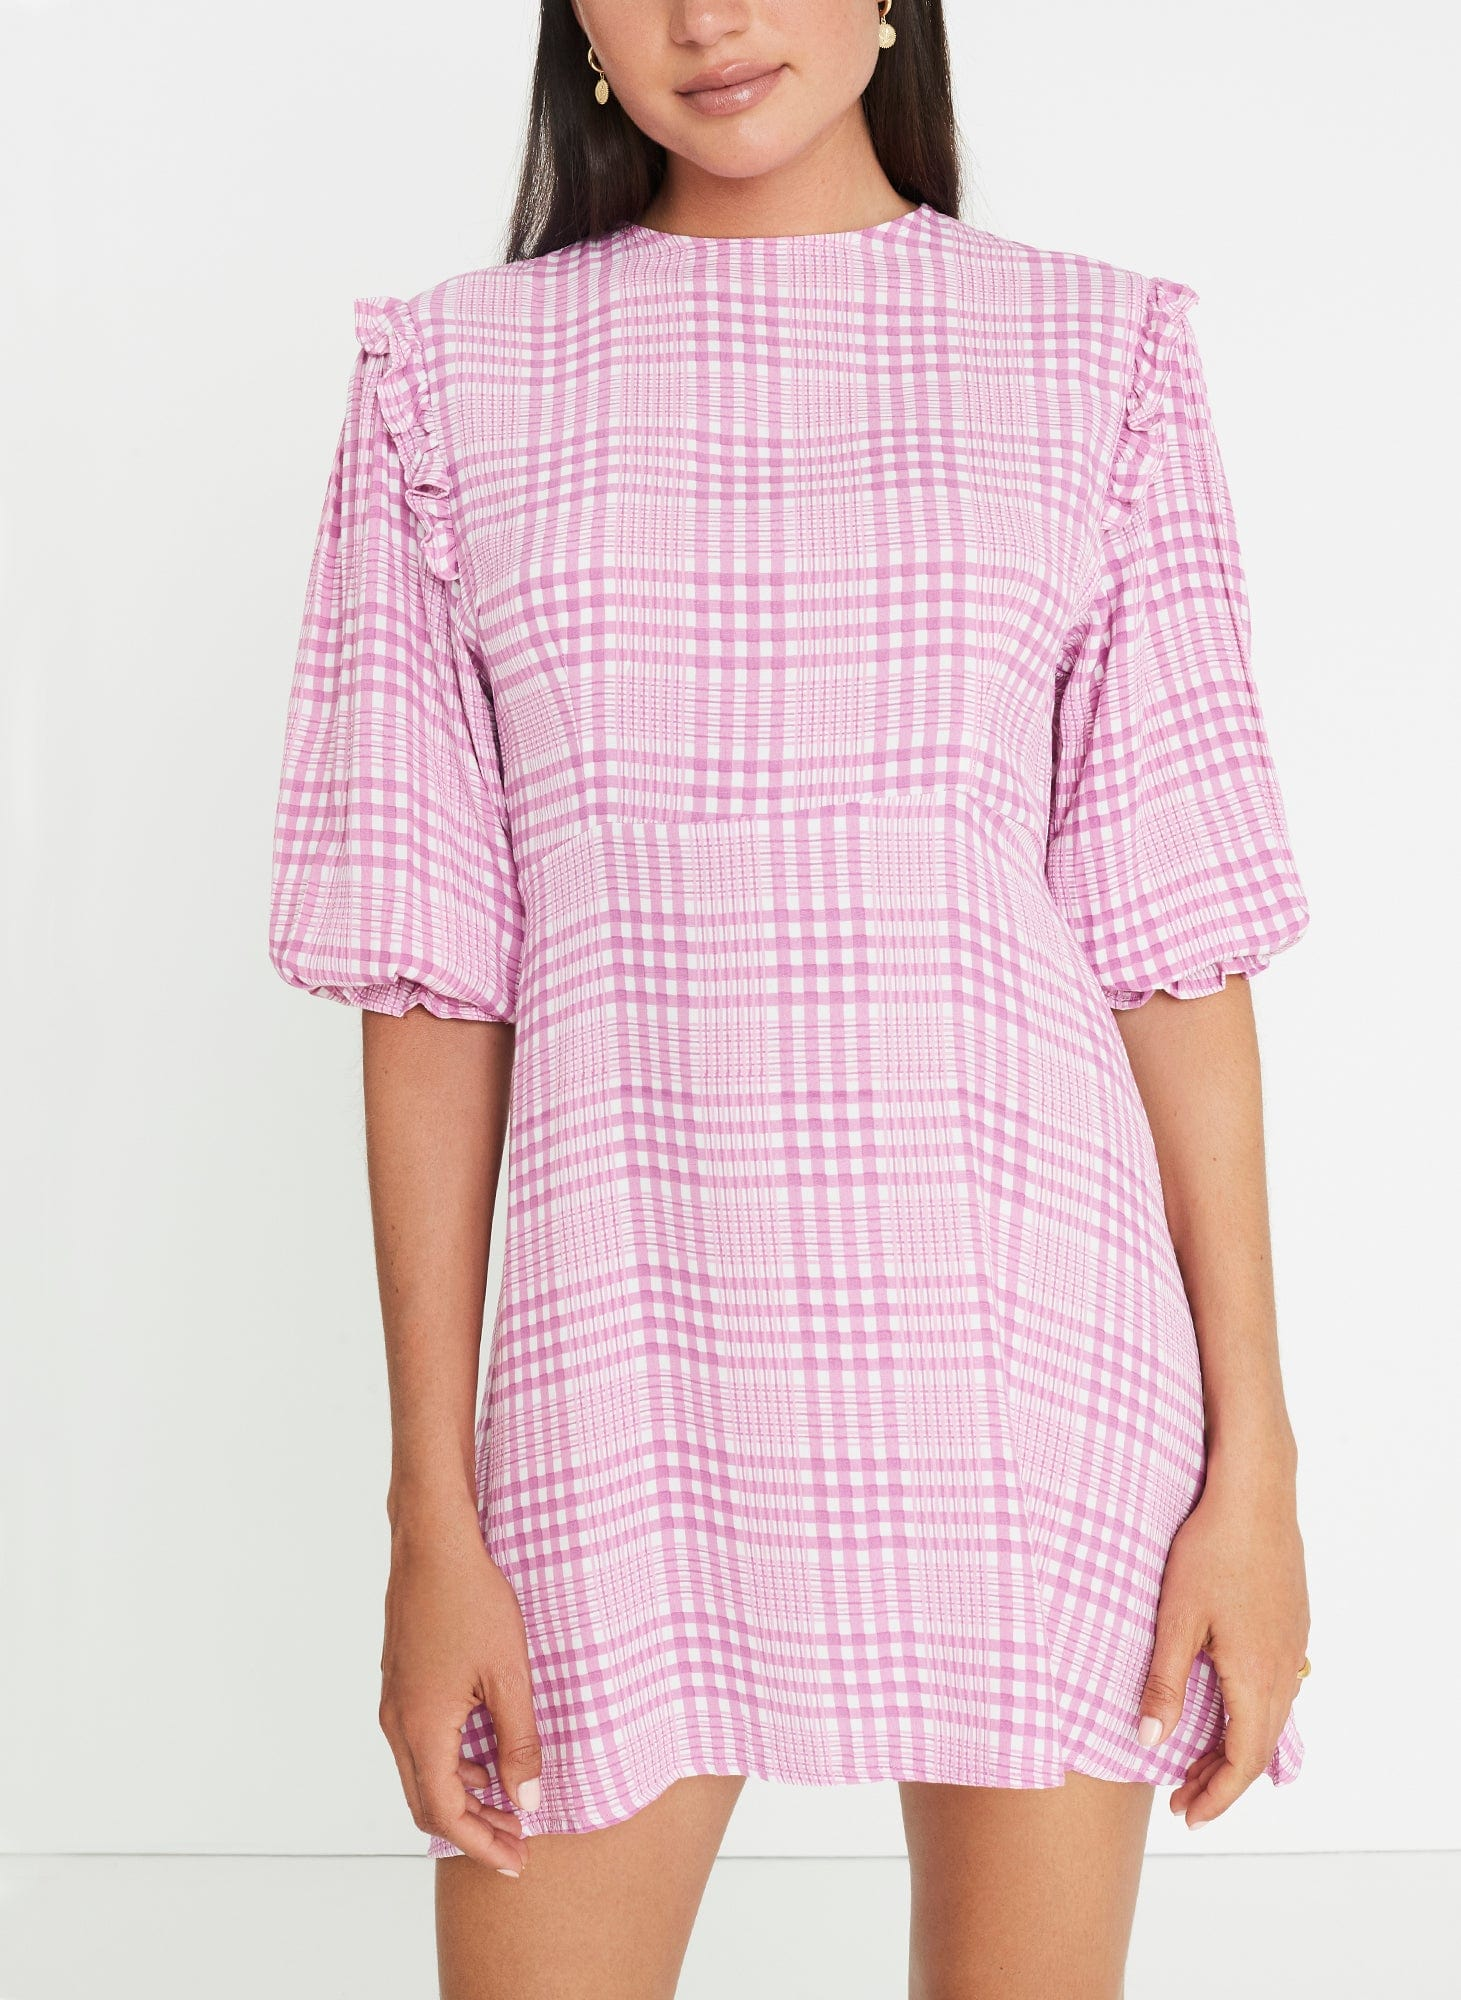 Djerra Check Print - Iris - Edwina Mini Dress